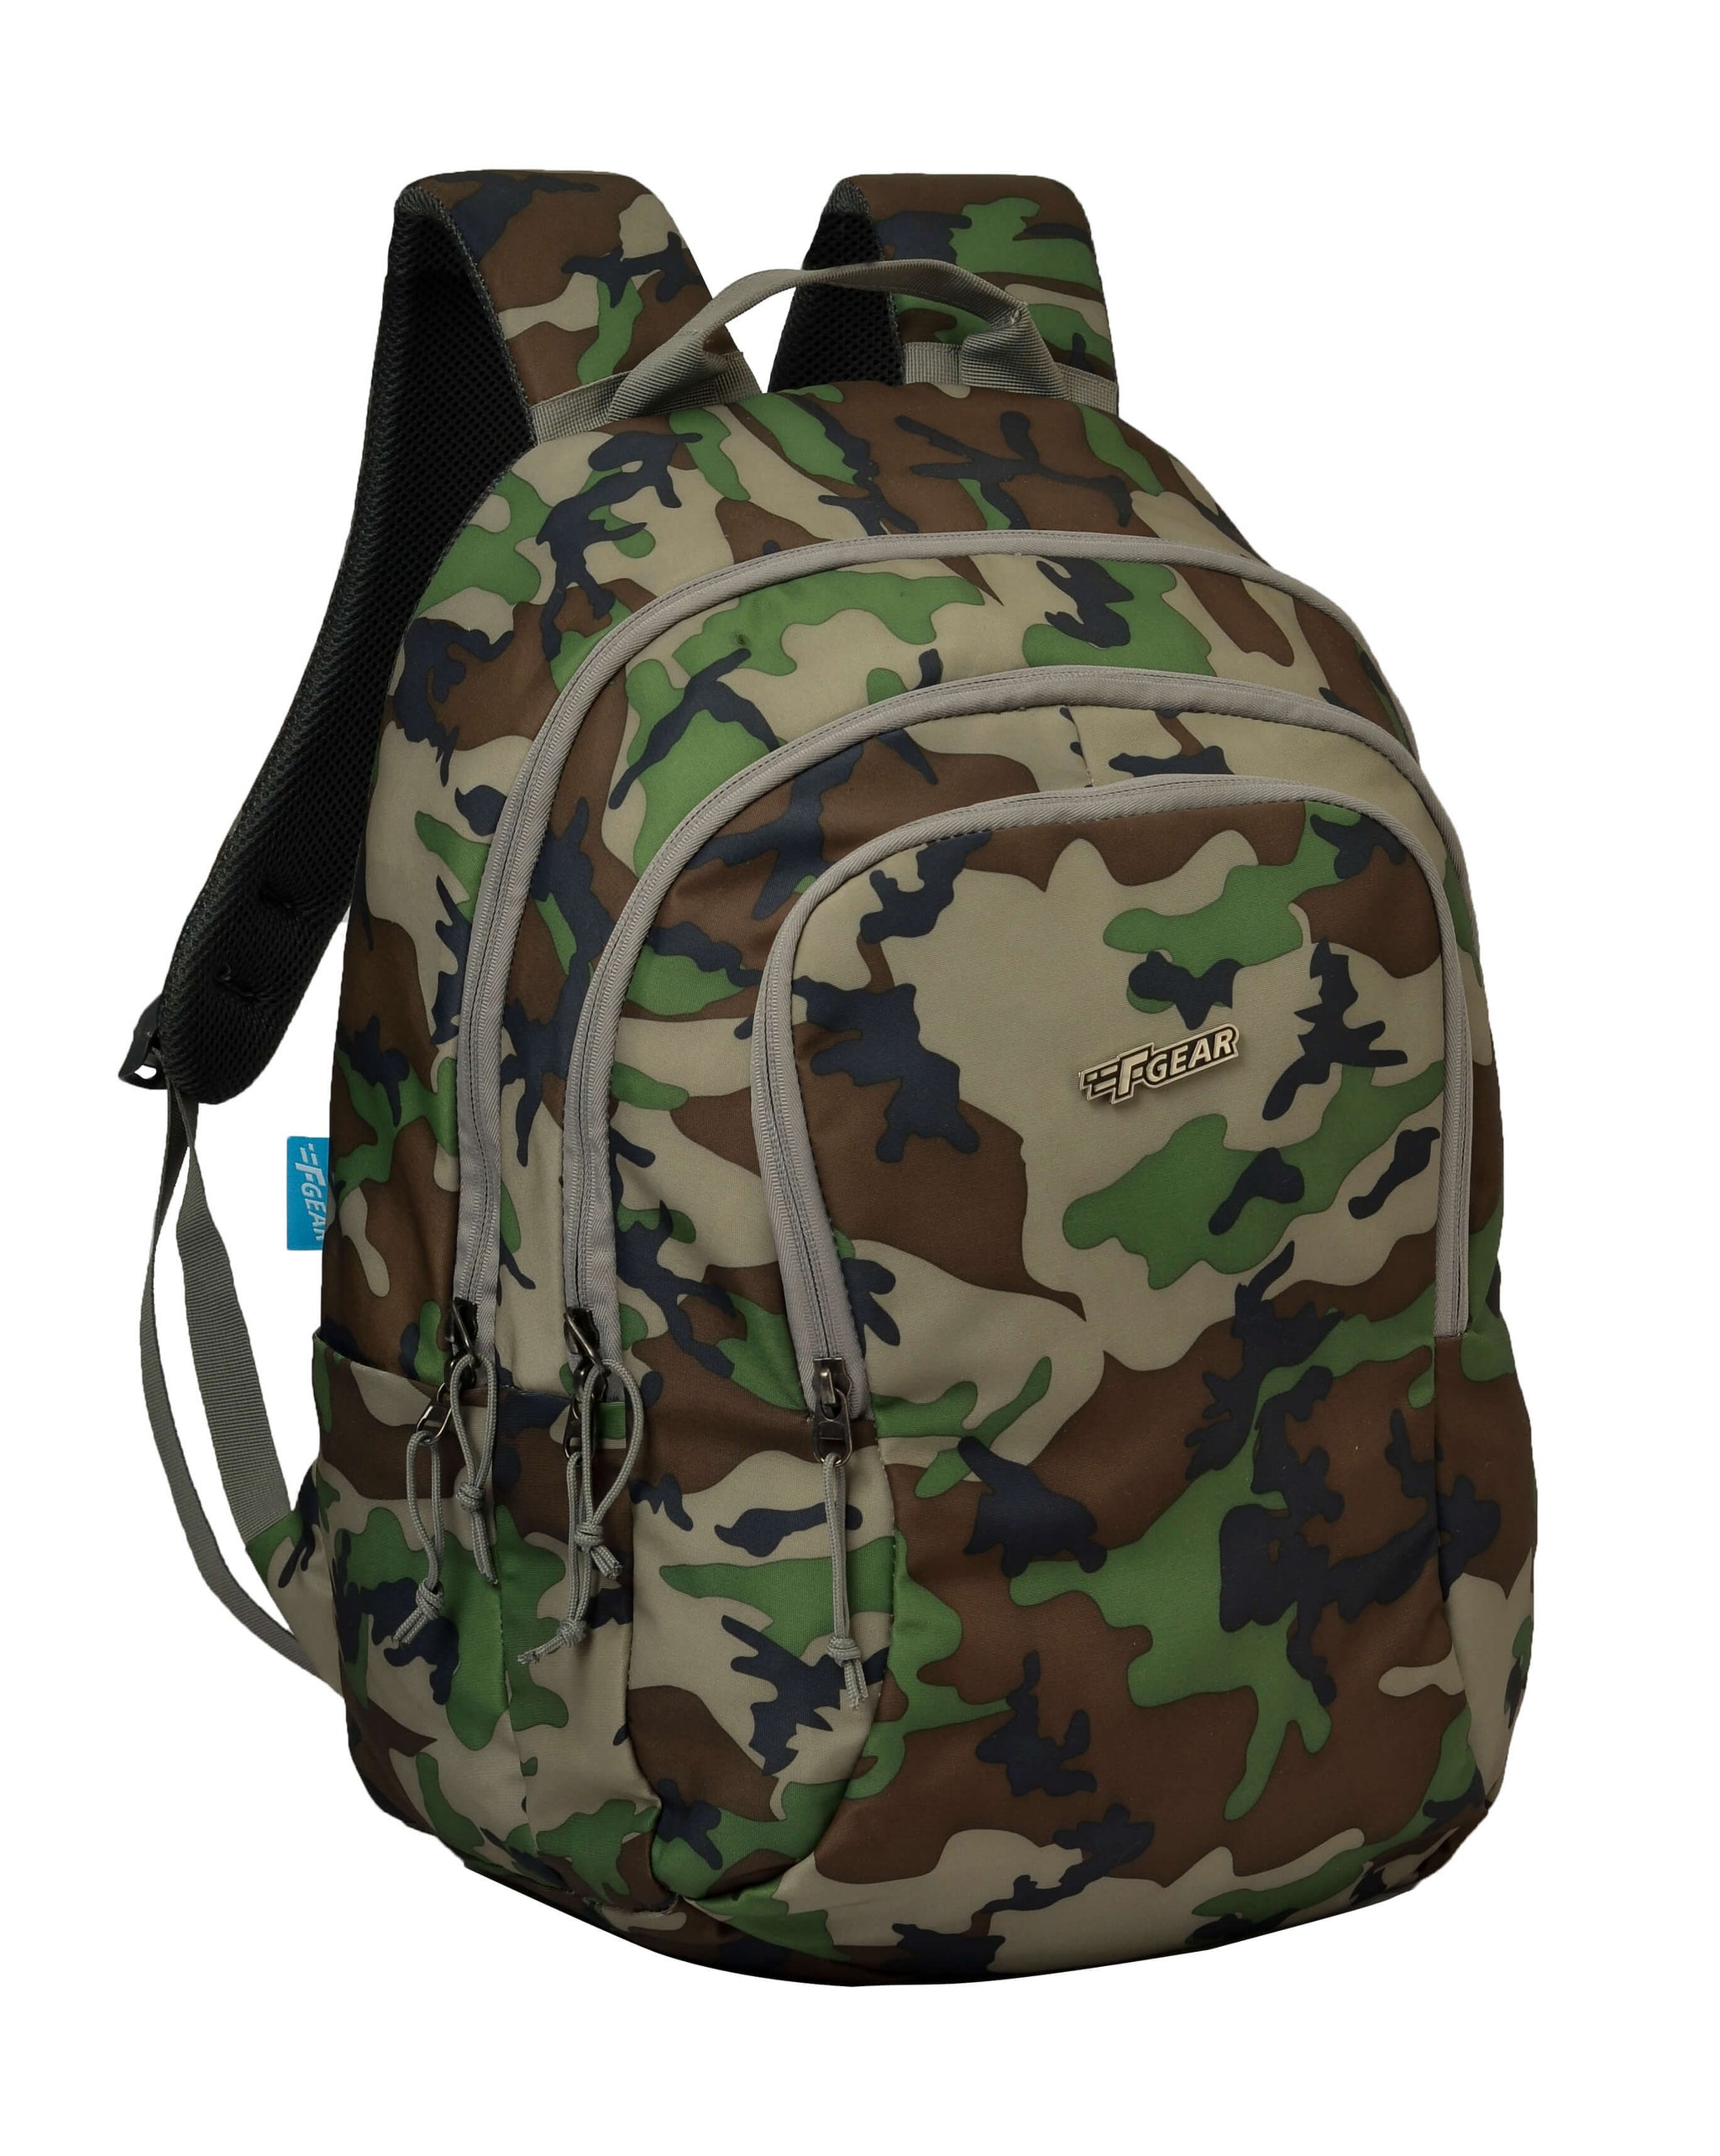 F Gear Military Crusader 30 Liter Backpack (Woodland A Camo)